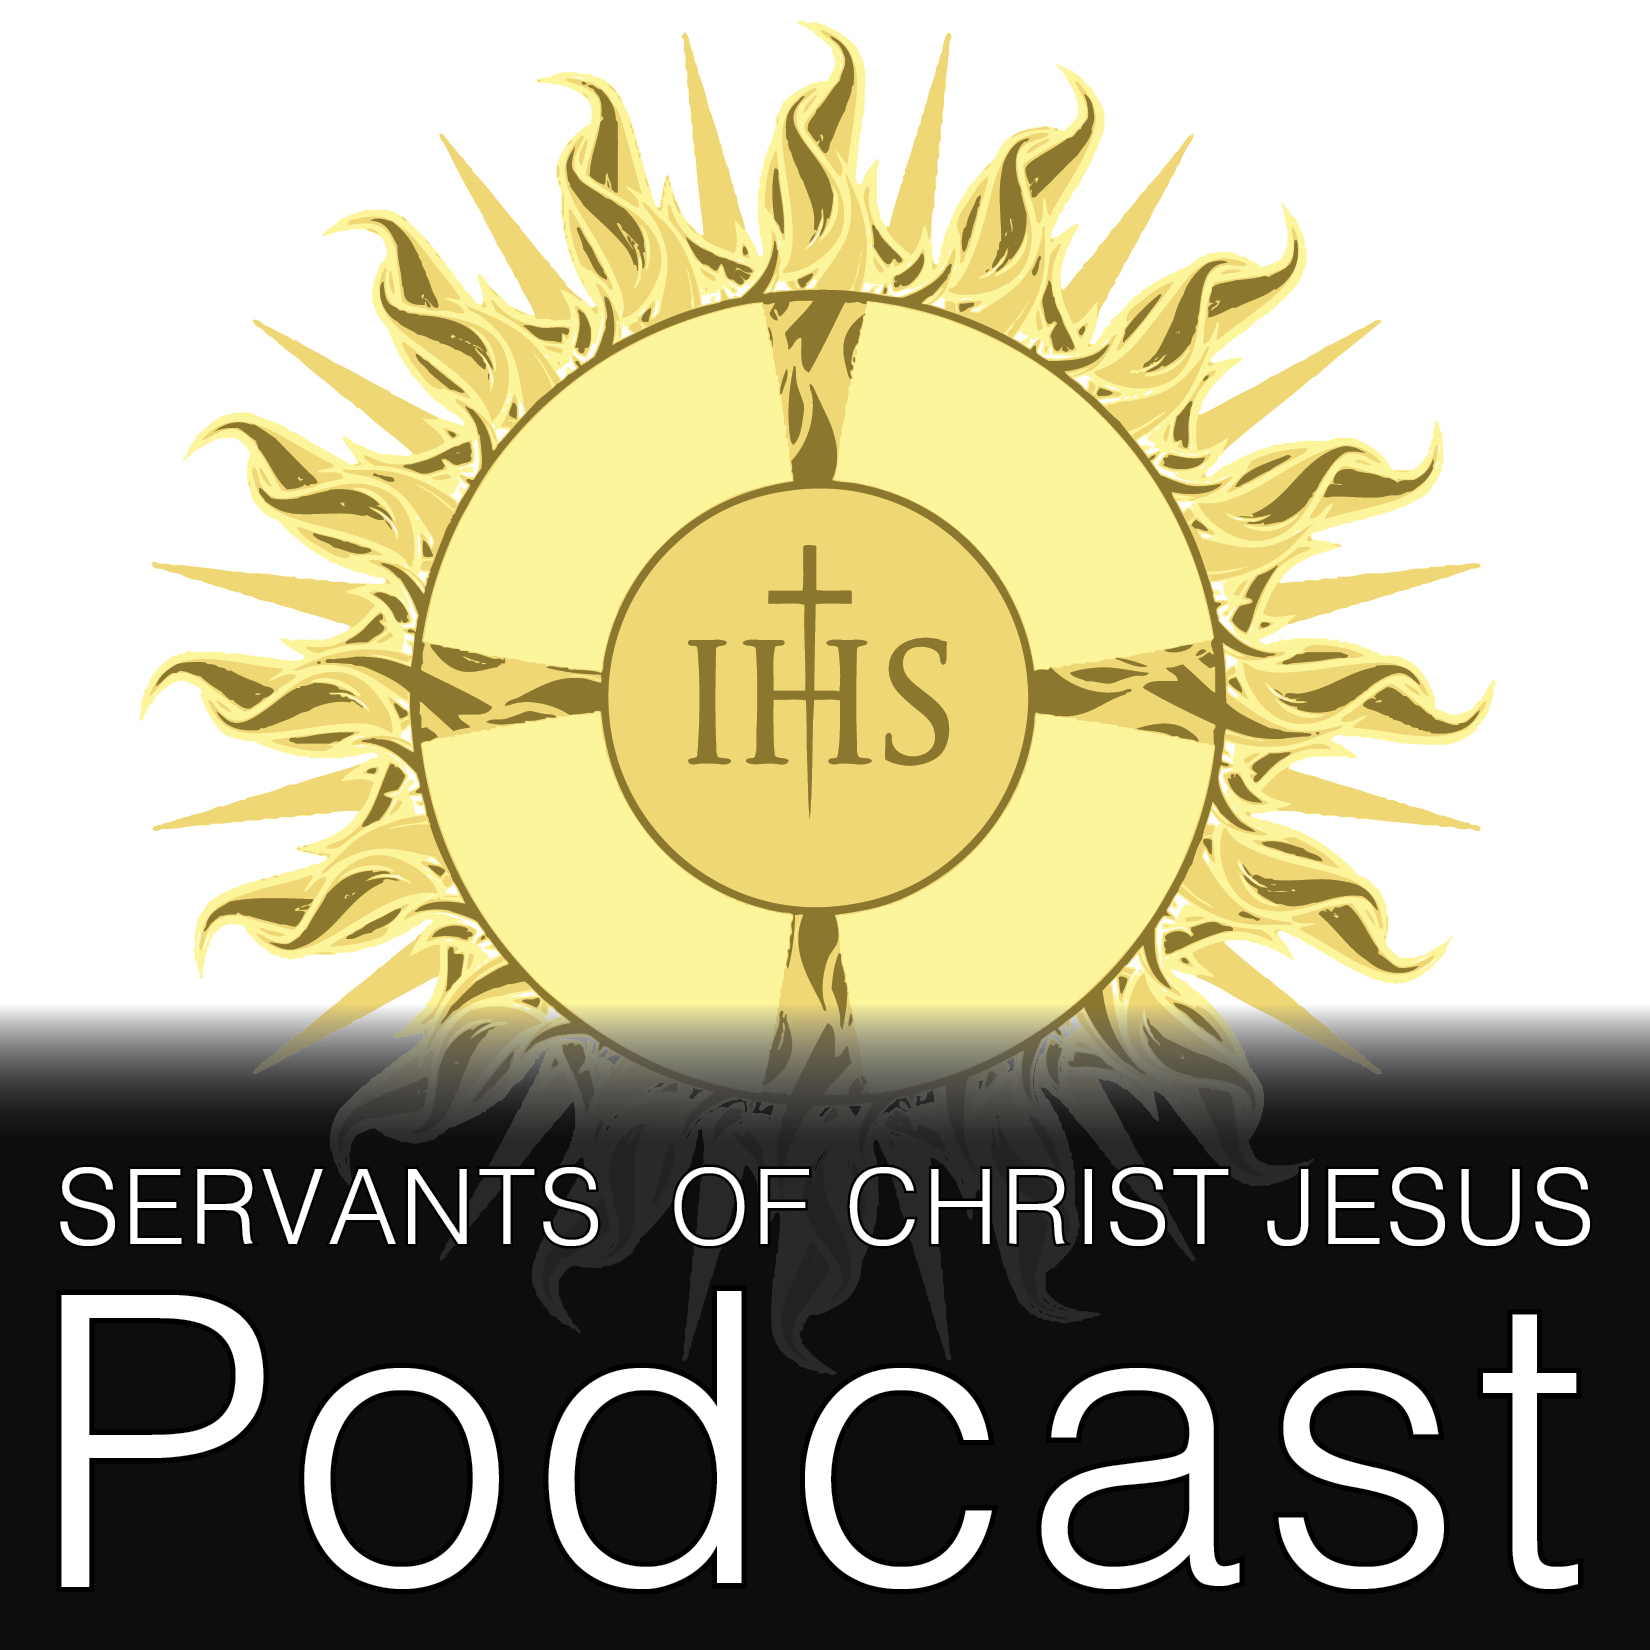 Homilies, Talks and the Podcast Episodes of the Servants of Christ Jesus